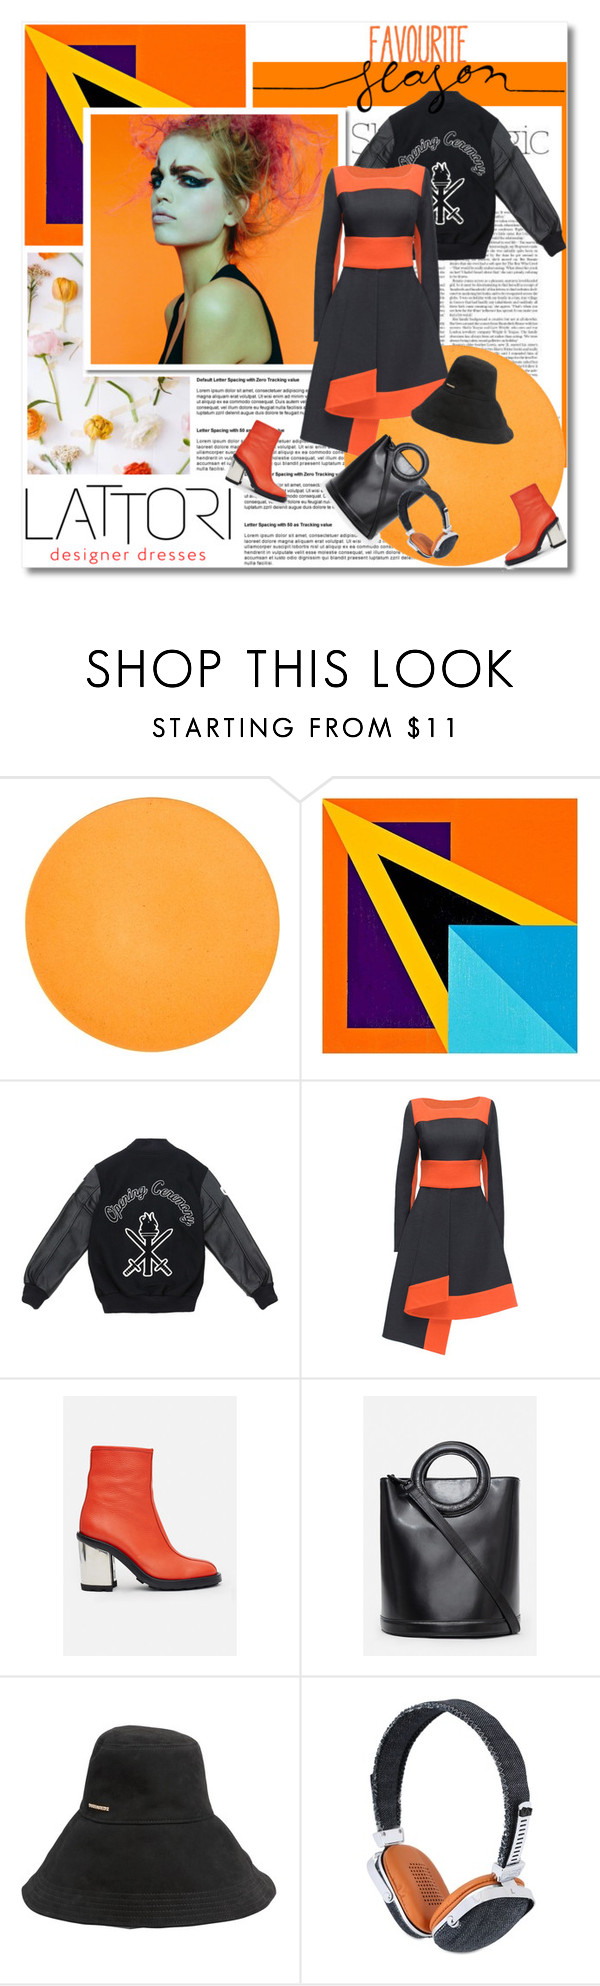 """""""Rock my dress babe - Lattori.com"""" by undici ❤ liked on Polyvore featuring Nicole, Universal Lighting and Decor, Opening Ceremony, Lattori, Dsquared2 and Frends"""